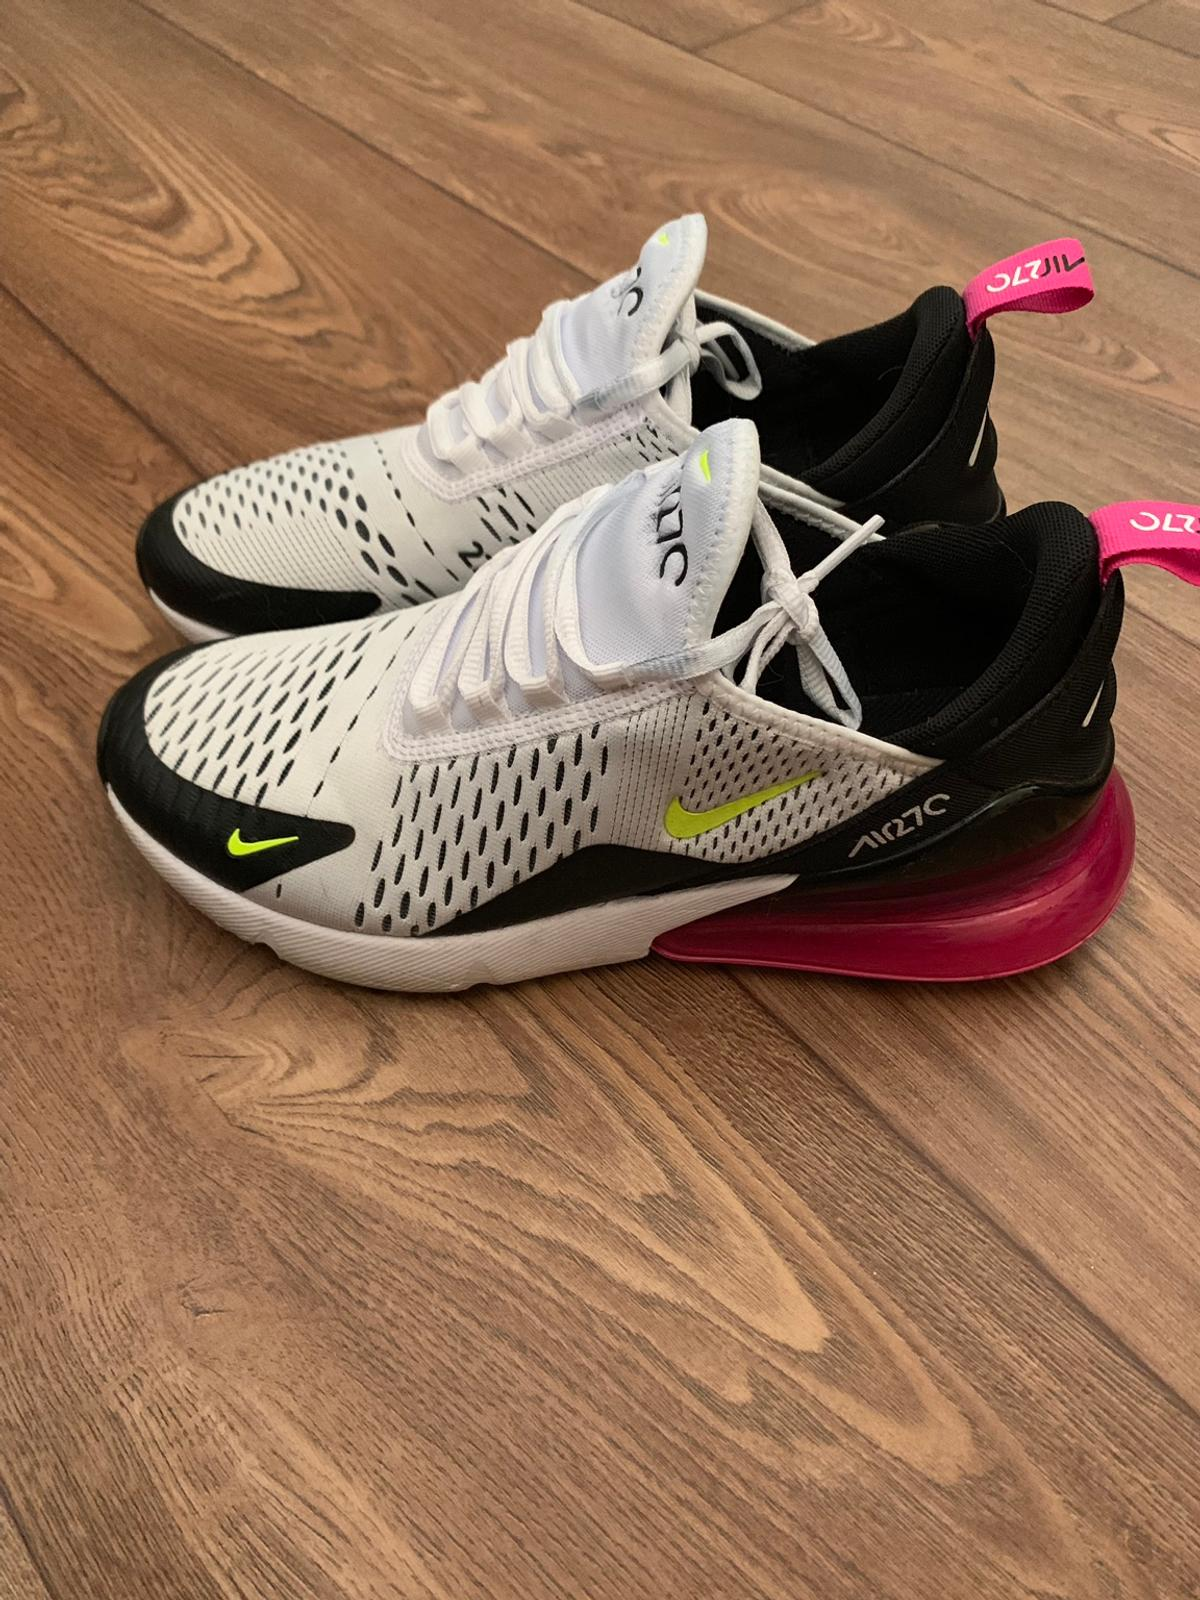 the best attitude f5ecf 1c84c Nike Air 270 junior size 6 in Bolsover for £60.00 for sale ...